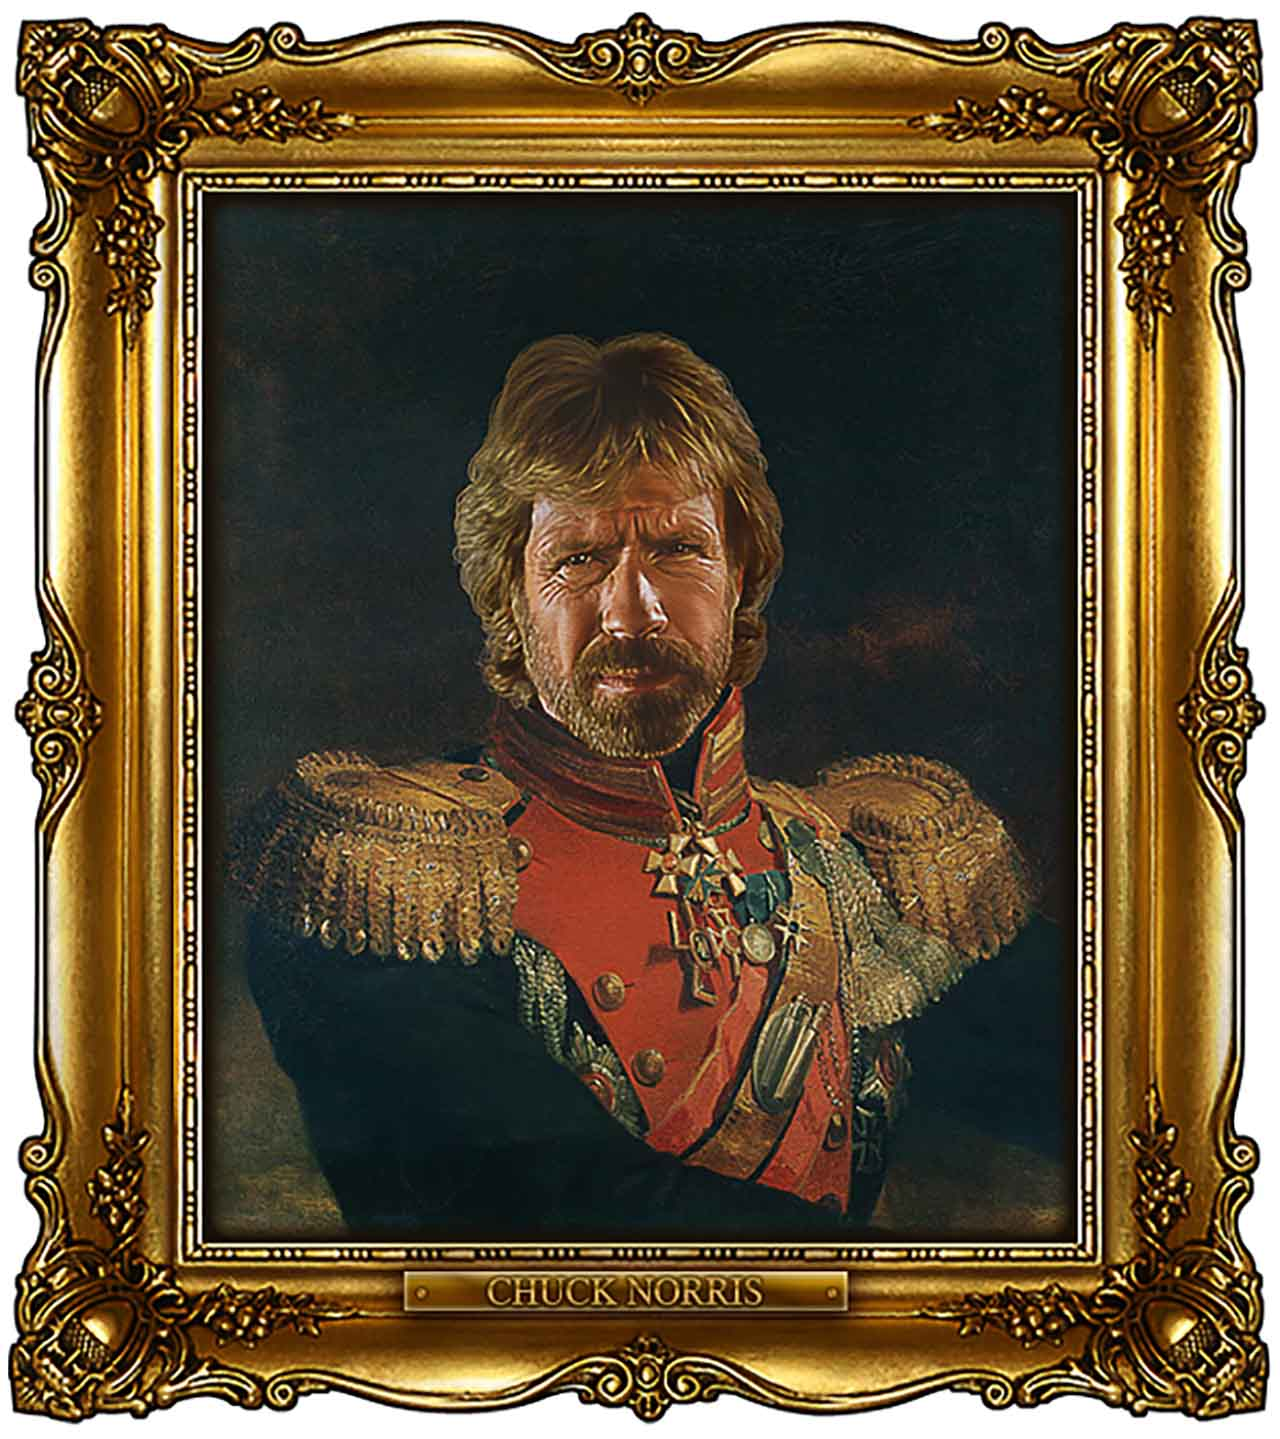 Artist Turns Famous Actors Into Russian Generals - Chuck Norris